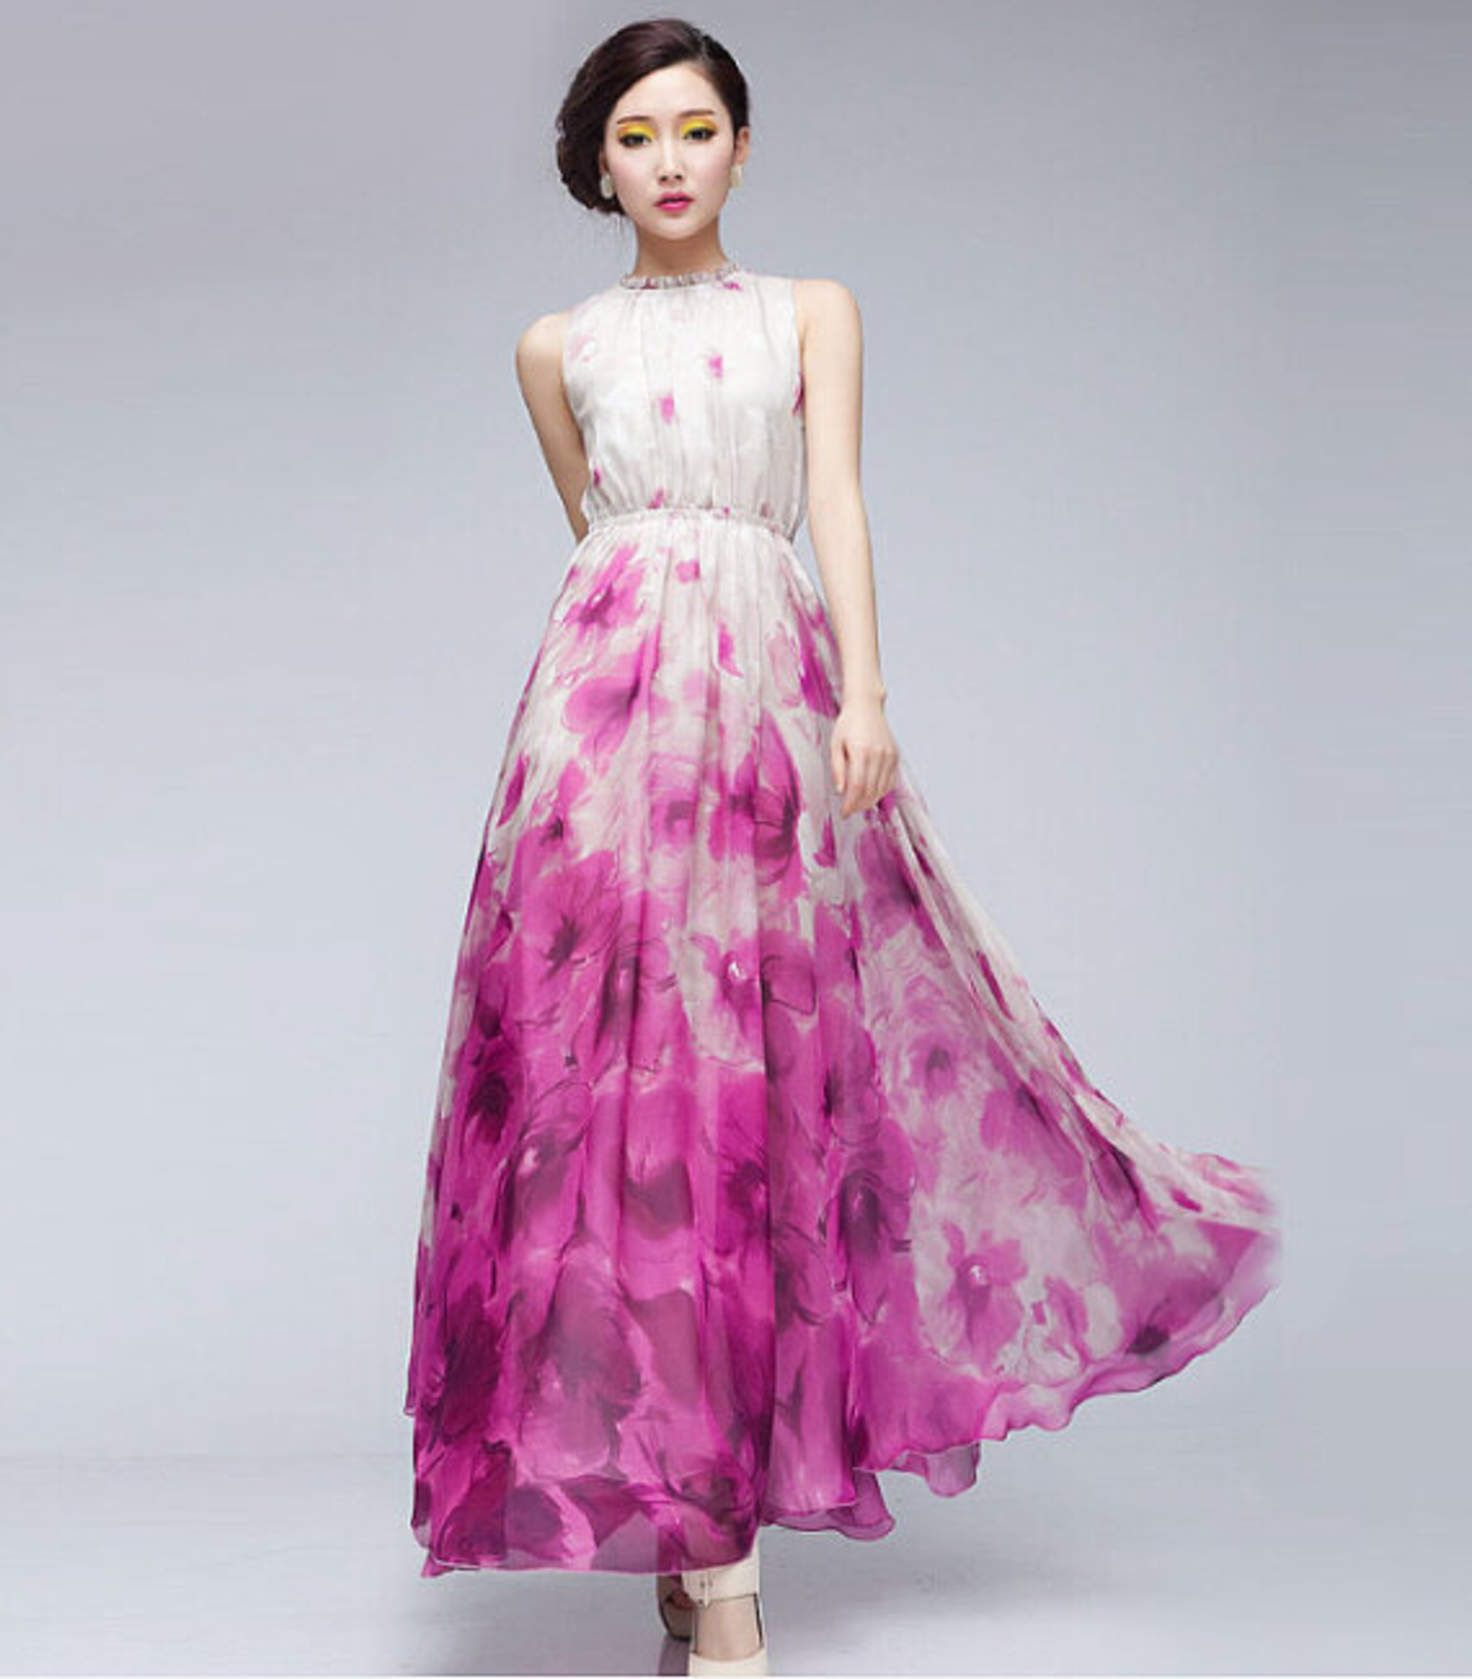 668791ba8e8d 15% Off Pink White Floral Print A-line Dress Bohemian Full Pleated Skirt  Wedding Bridesmaid Holiday Day Party Prom Ball Gown Event Sale